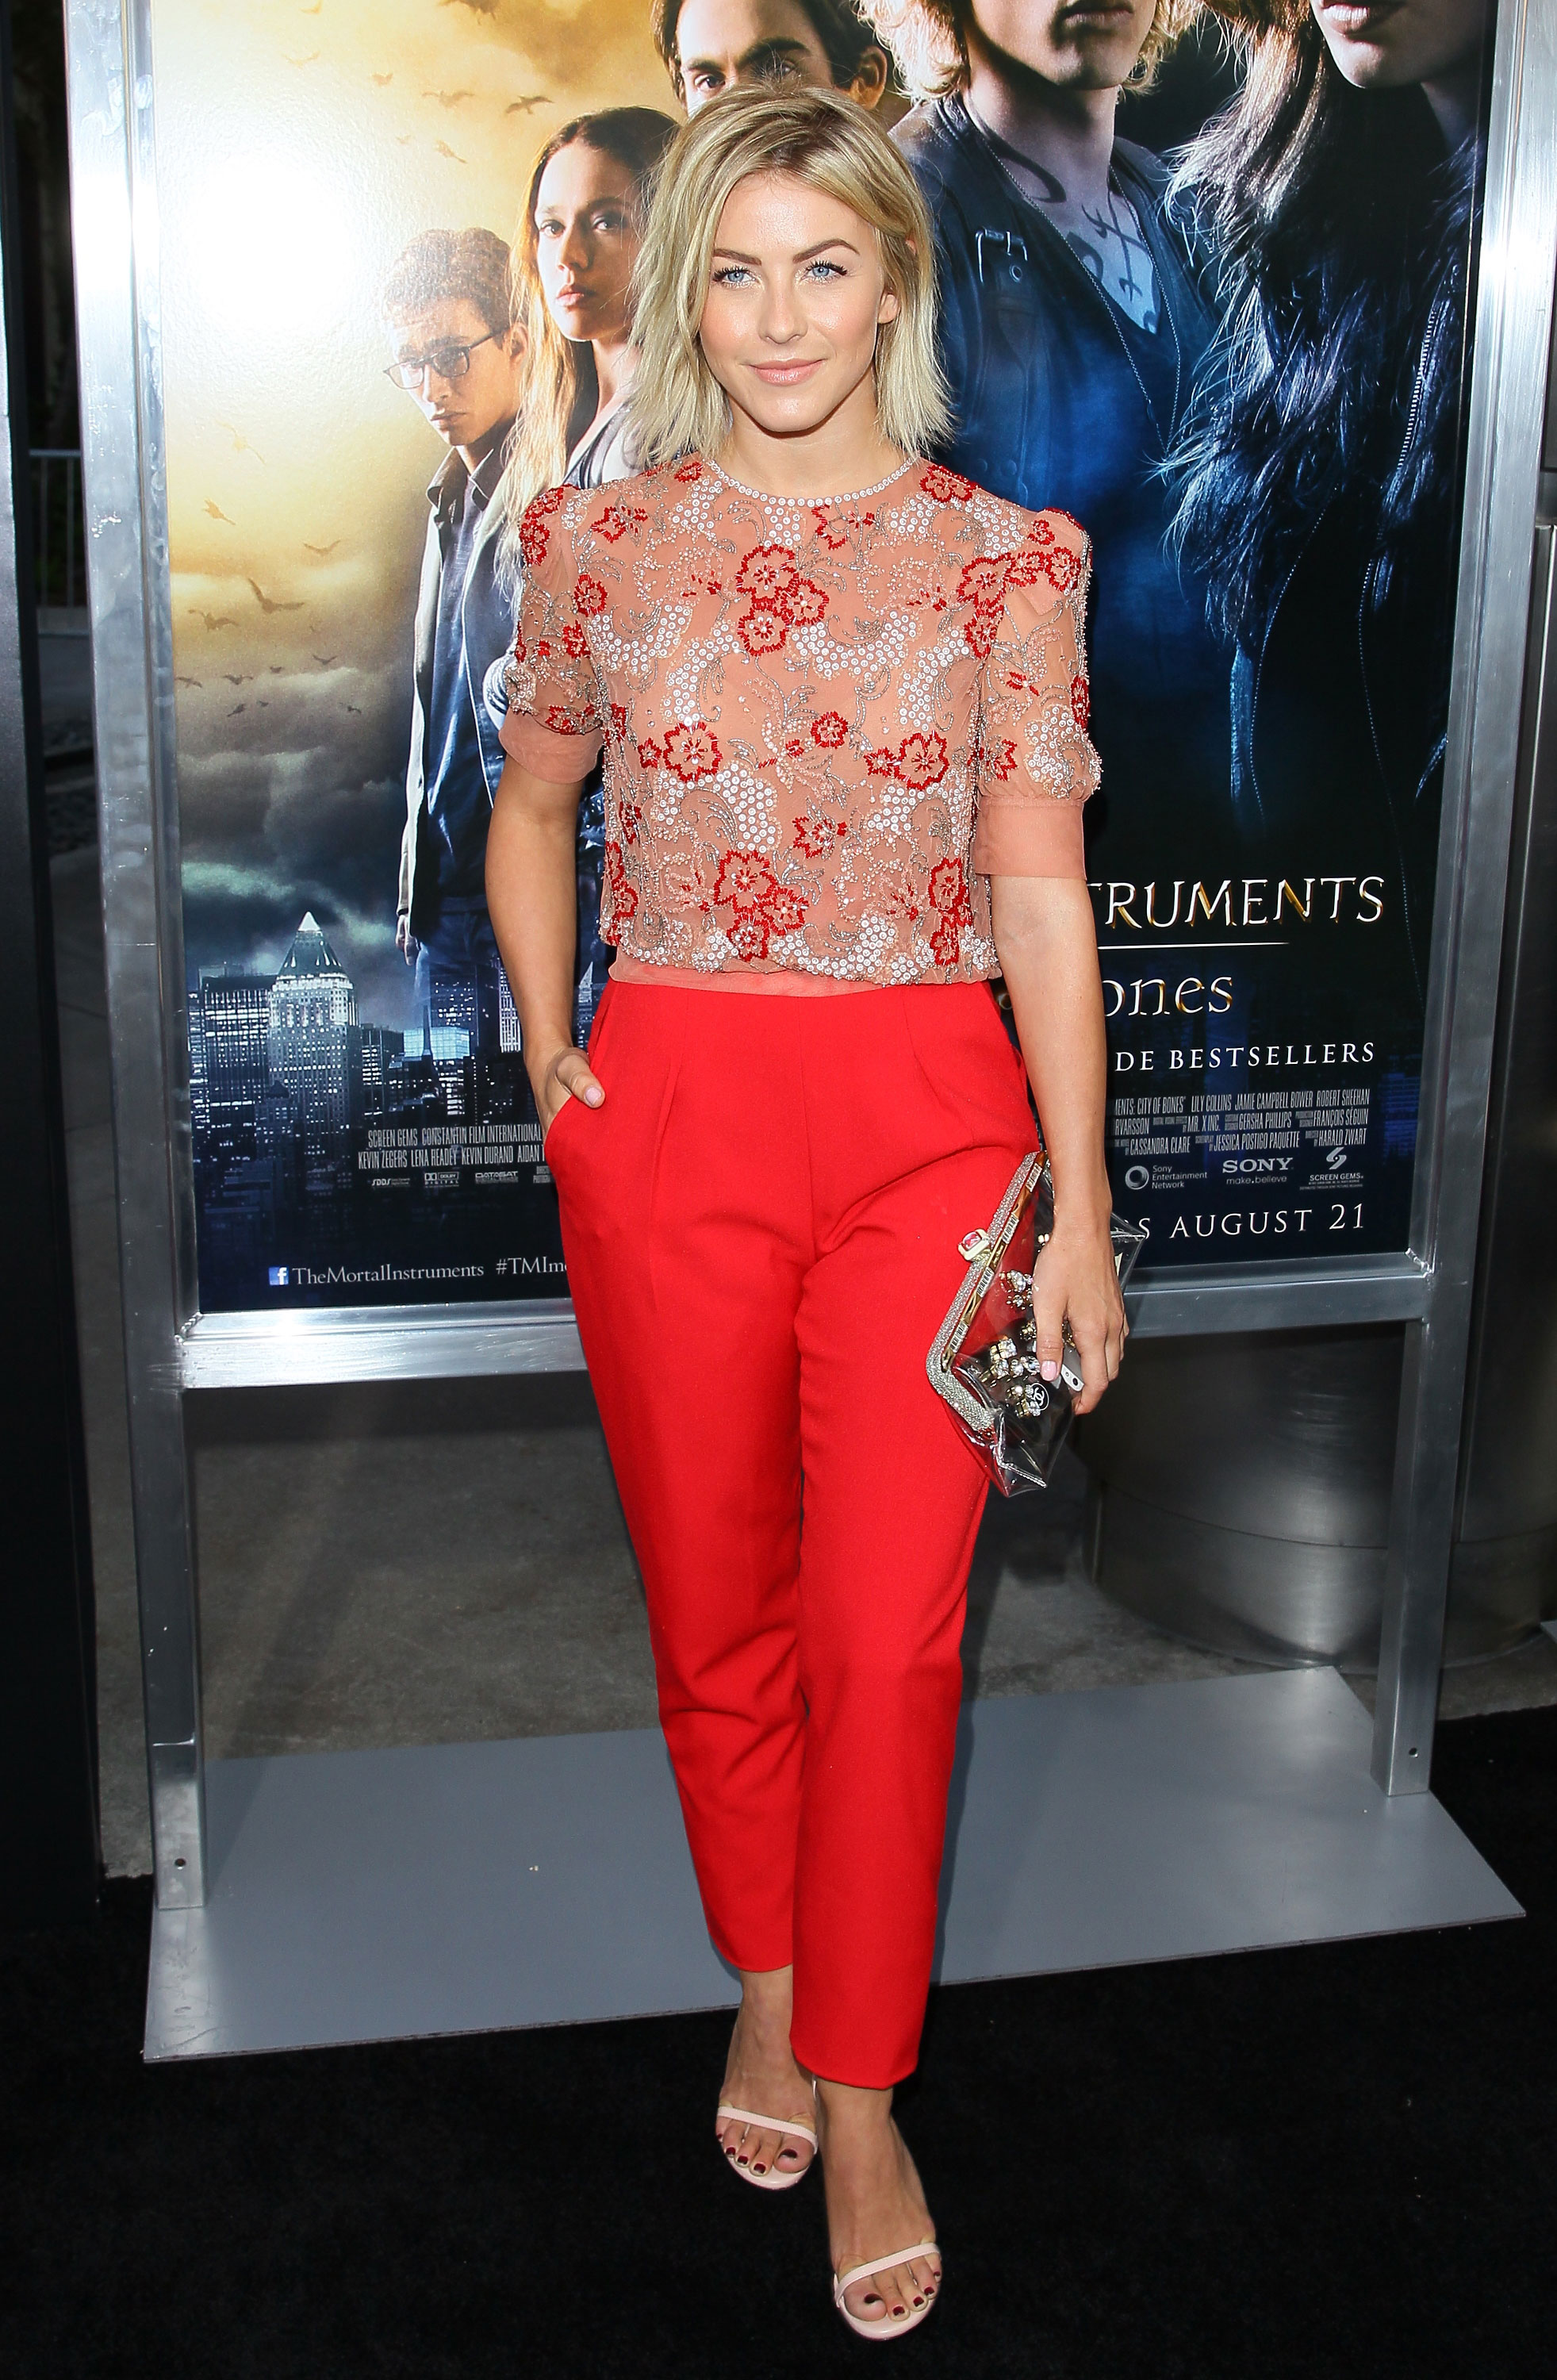 Julianna Hough florals